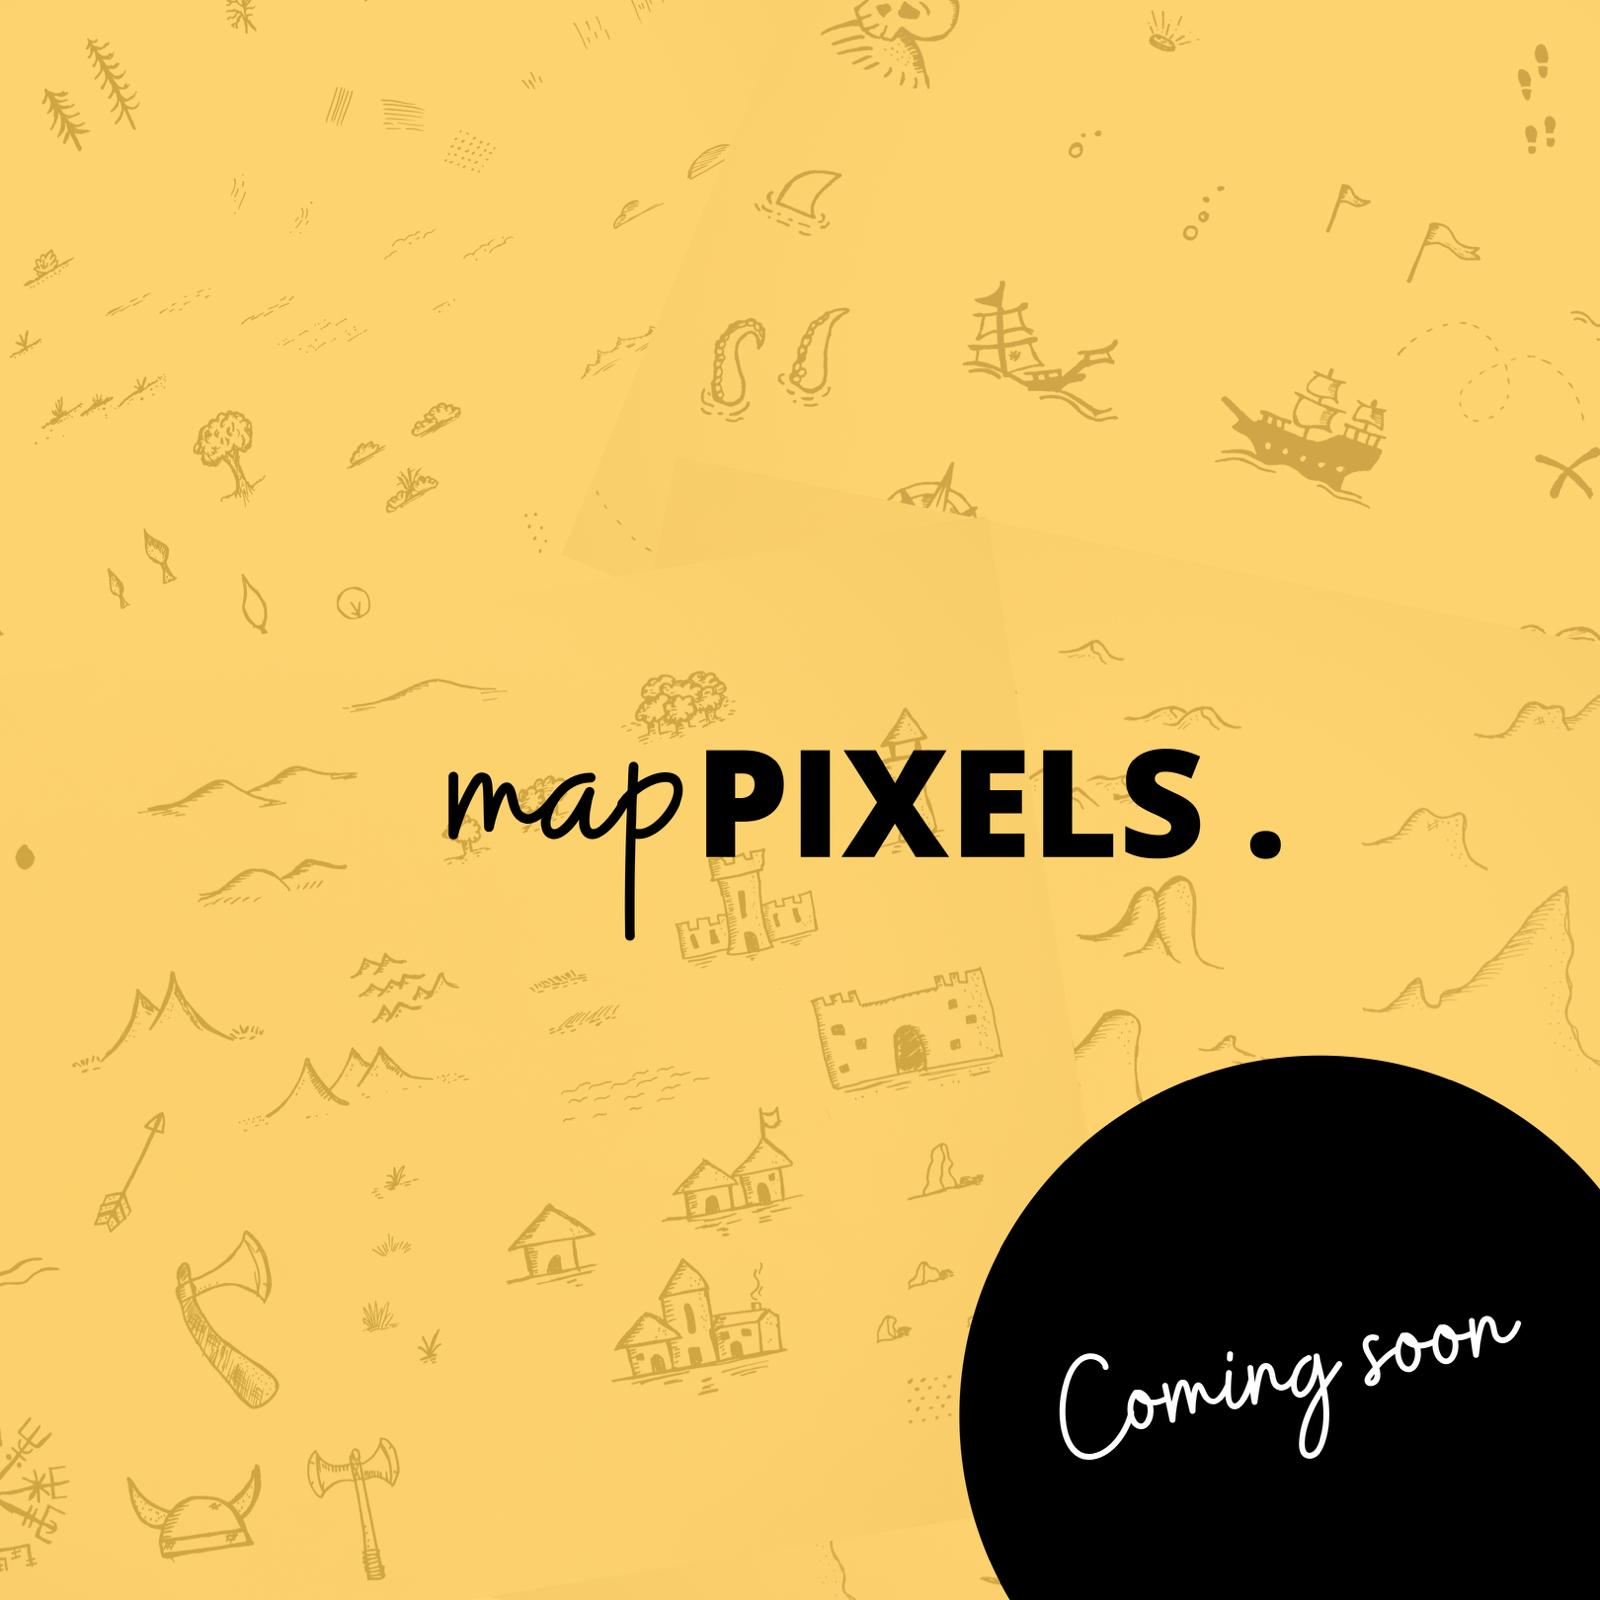 Map Pixels is coming soon.